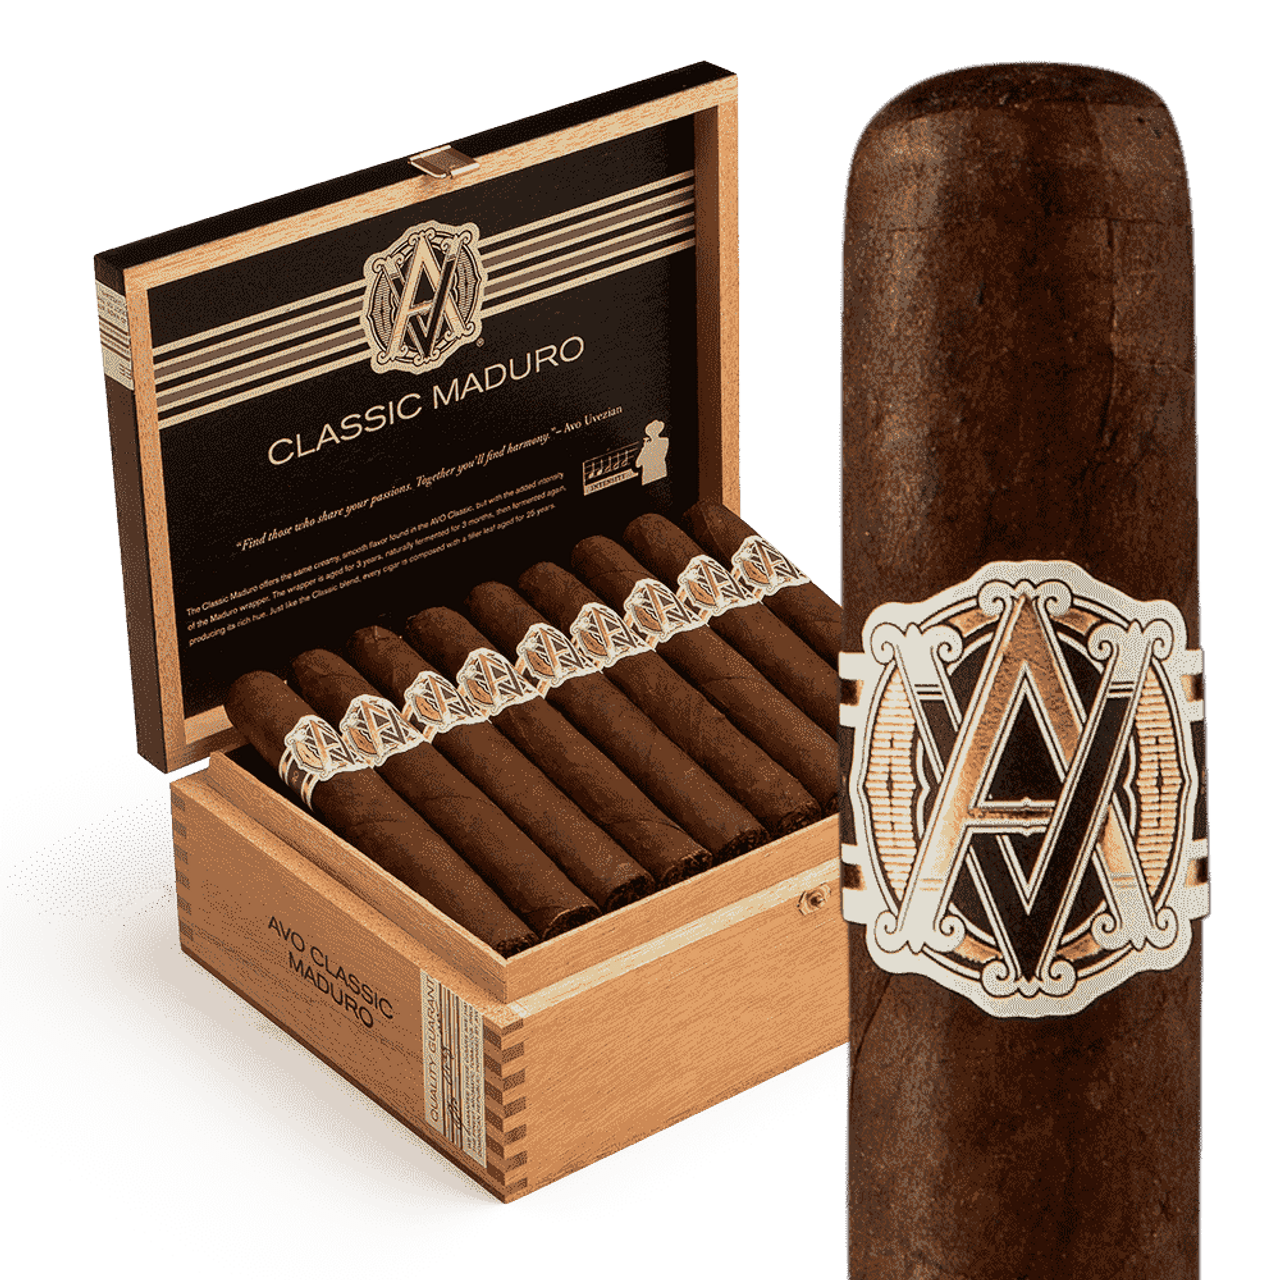 AVO Classic Maduro #2 Cigars - 6.0 x 50 (Box of 25)